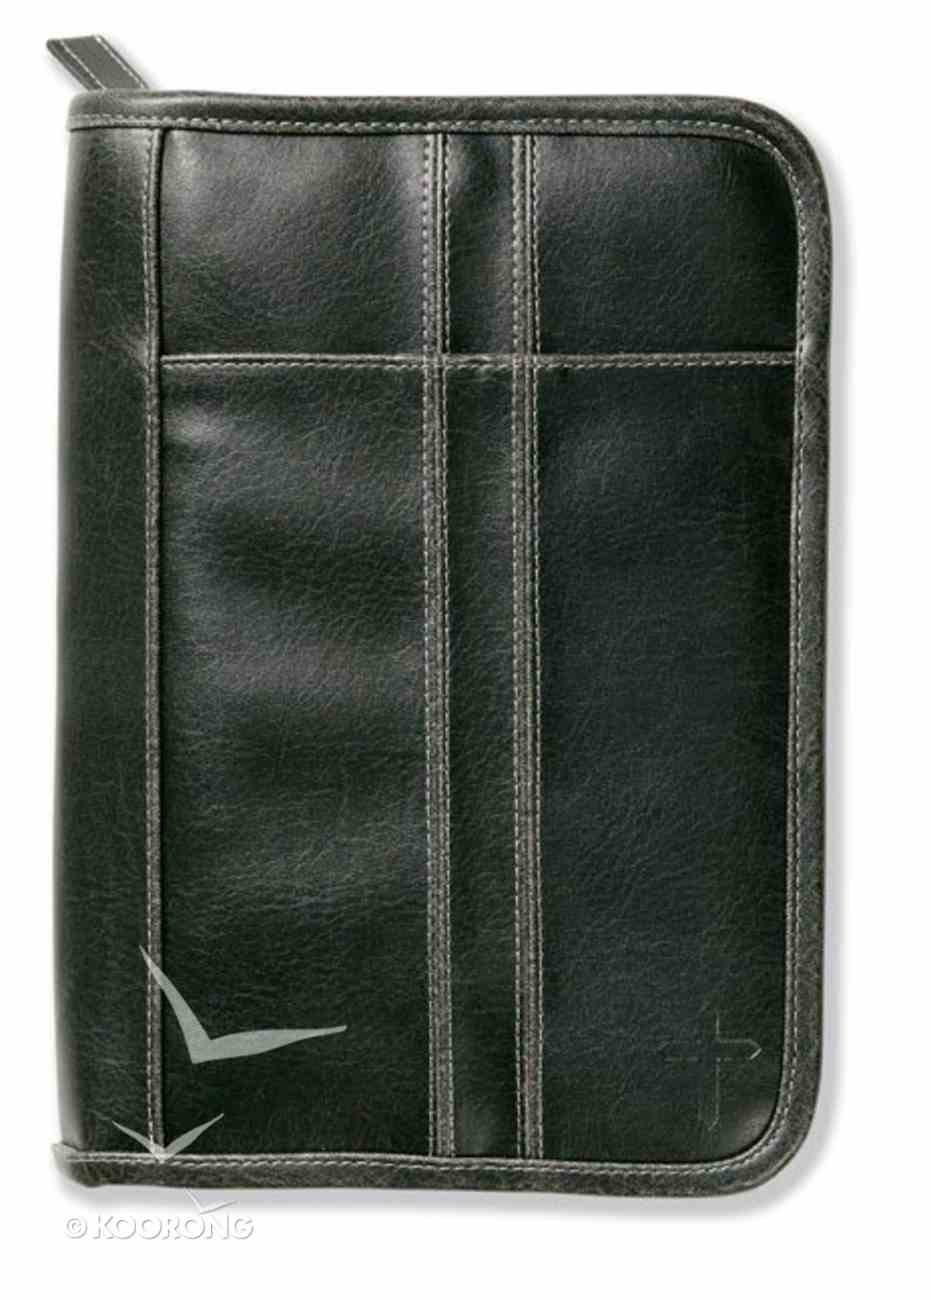 Bible Cover Distressed Leather-Look Black Medium Bible Cover